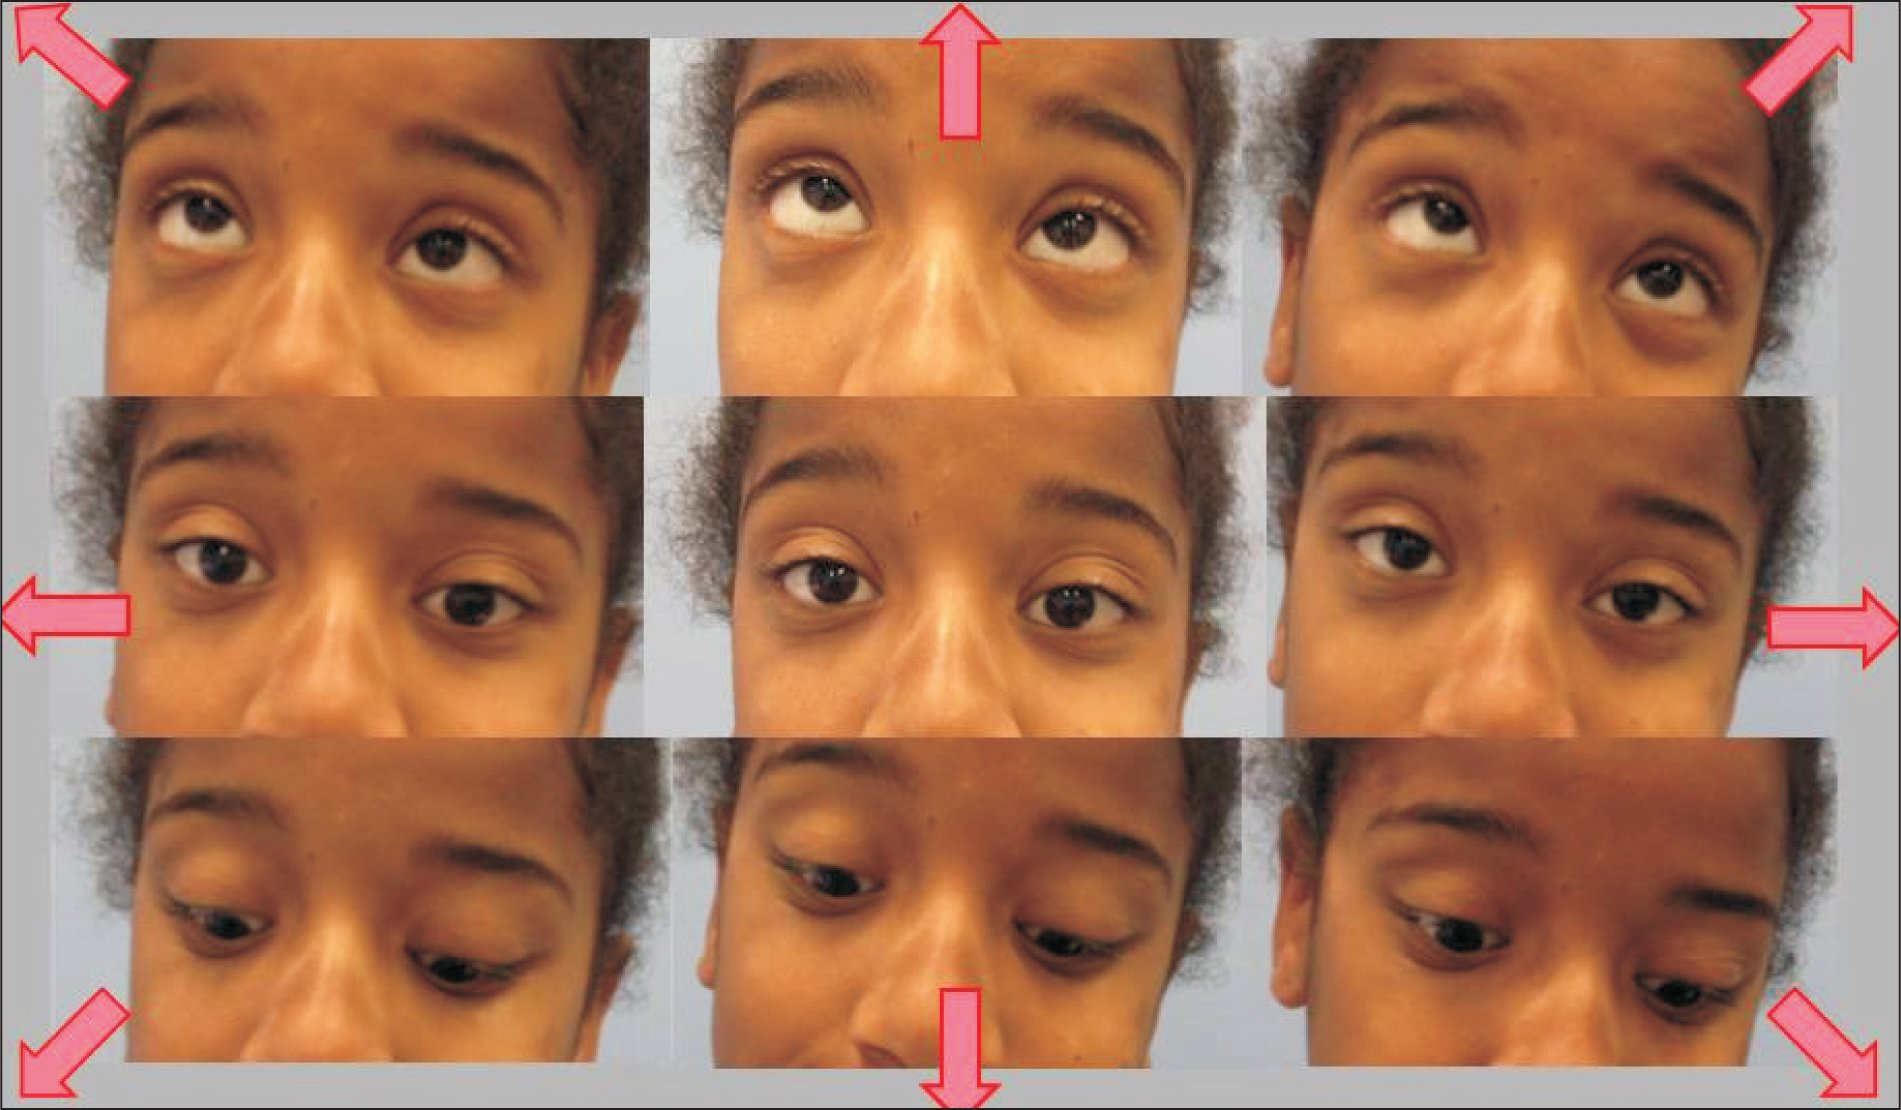 Photographs showing different postures and eye positions. The clinical profile of horizontal gaze palsy with progressive scoliosis was confirmed. Photographs demonstrating absent horizontal eye movement on attempted gaze to right (left) or left (right) but normal vertical gaze upward (upper) and downward (lower) from the primary position (central).